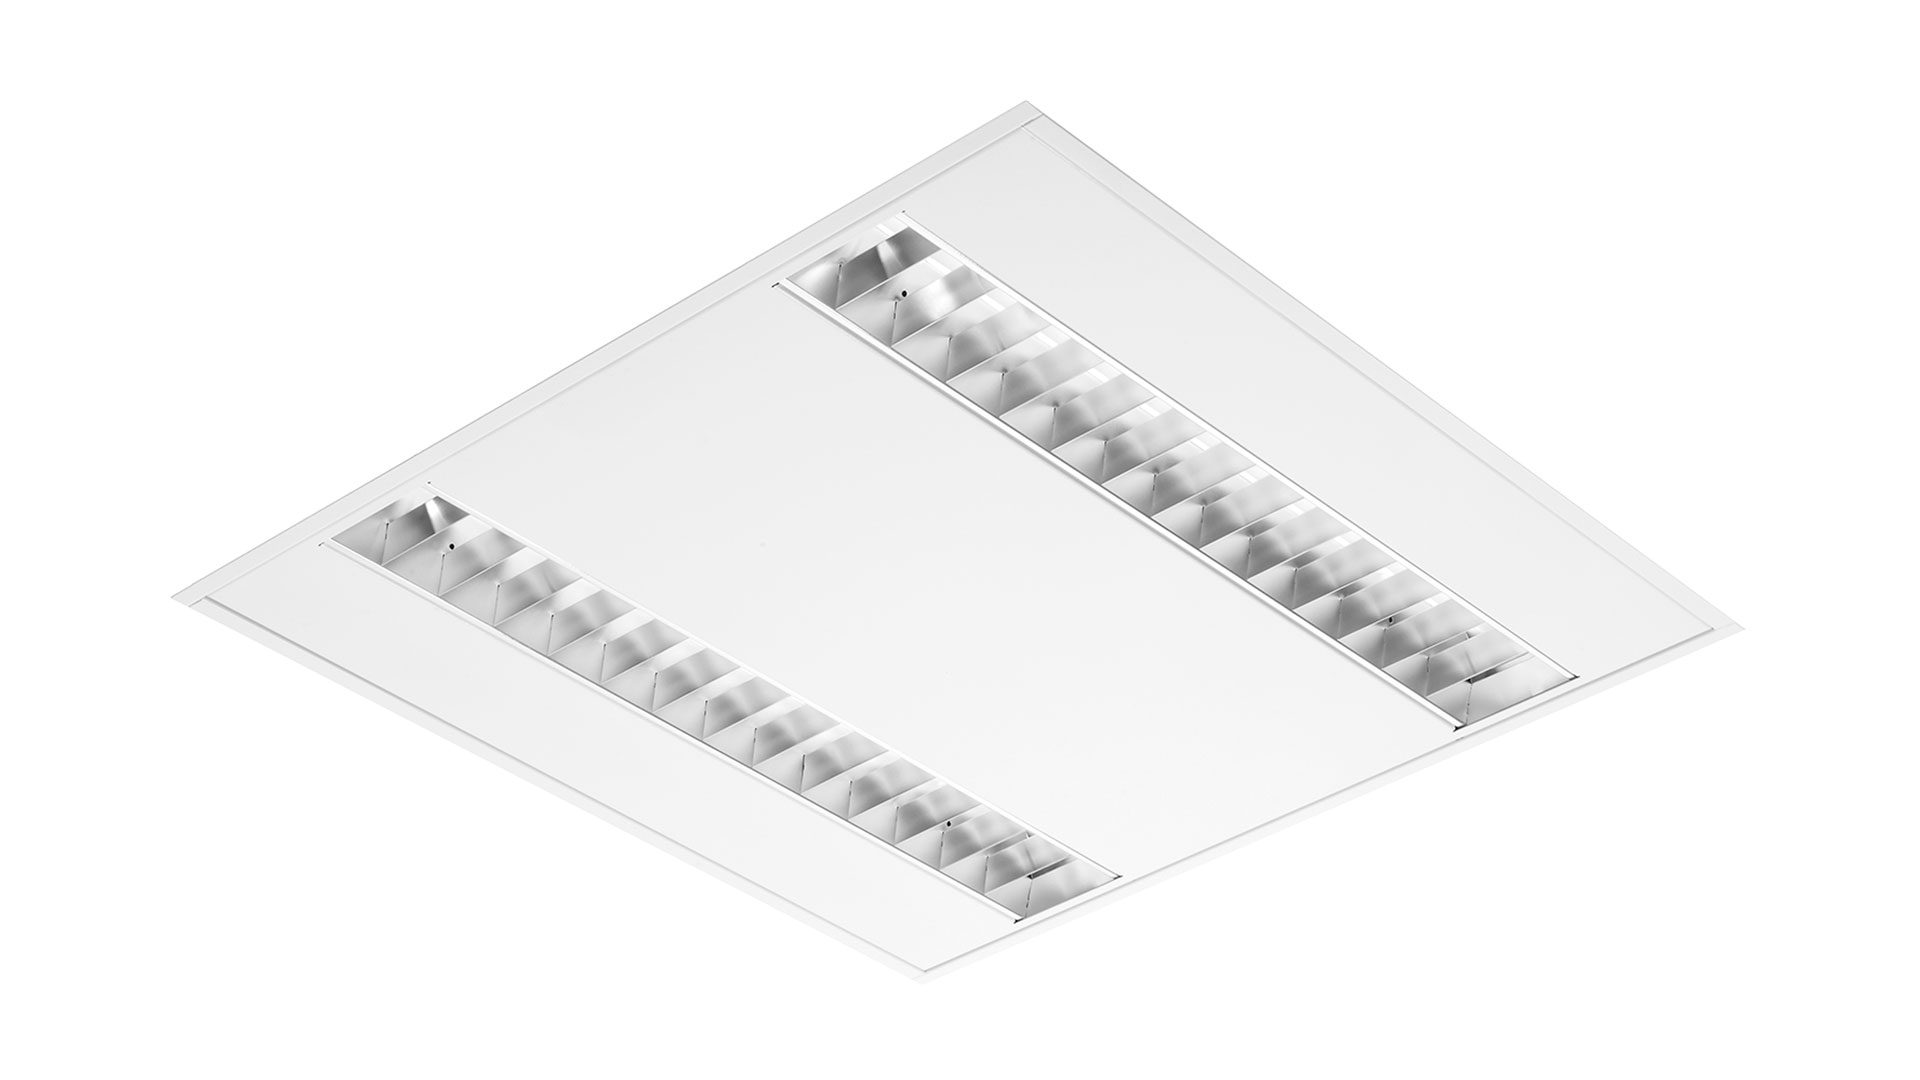 Image of product type  RELAX AA / A2 / A1 / A8 LED